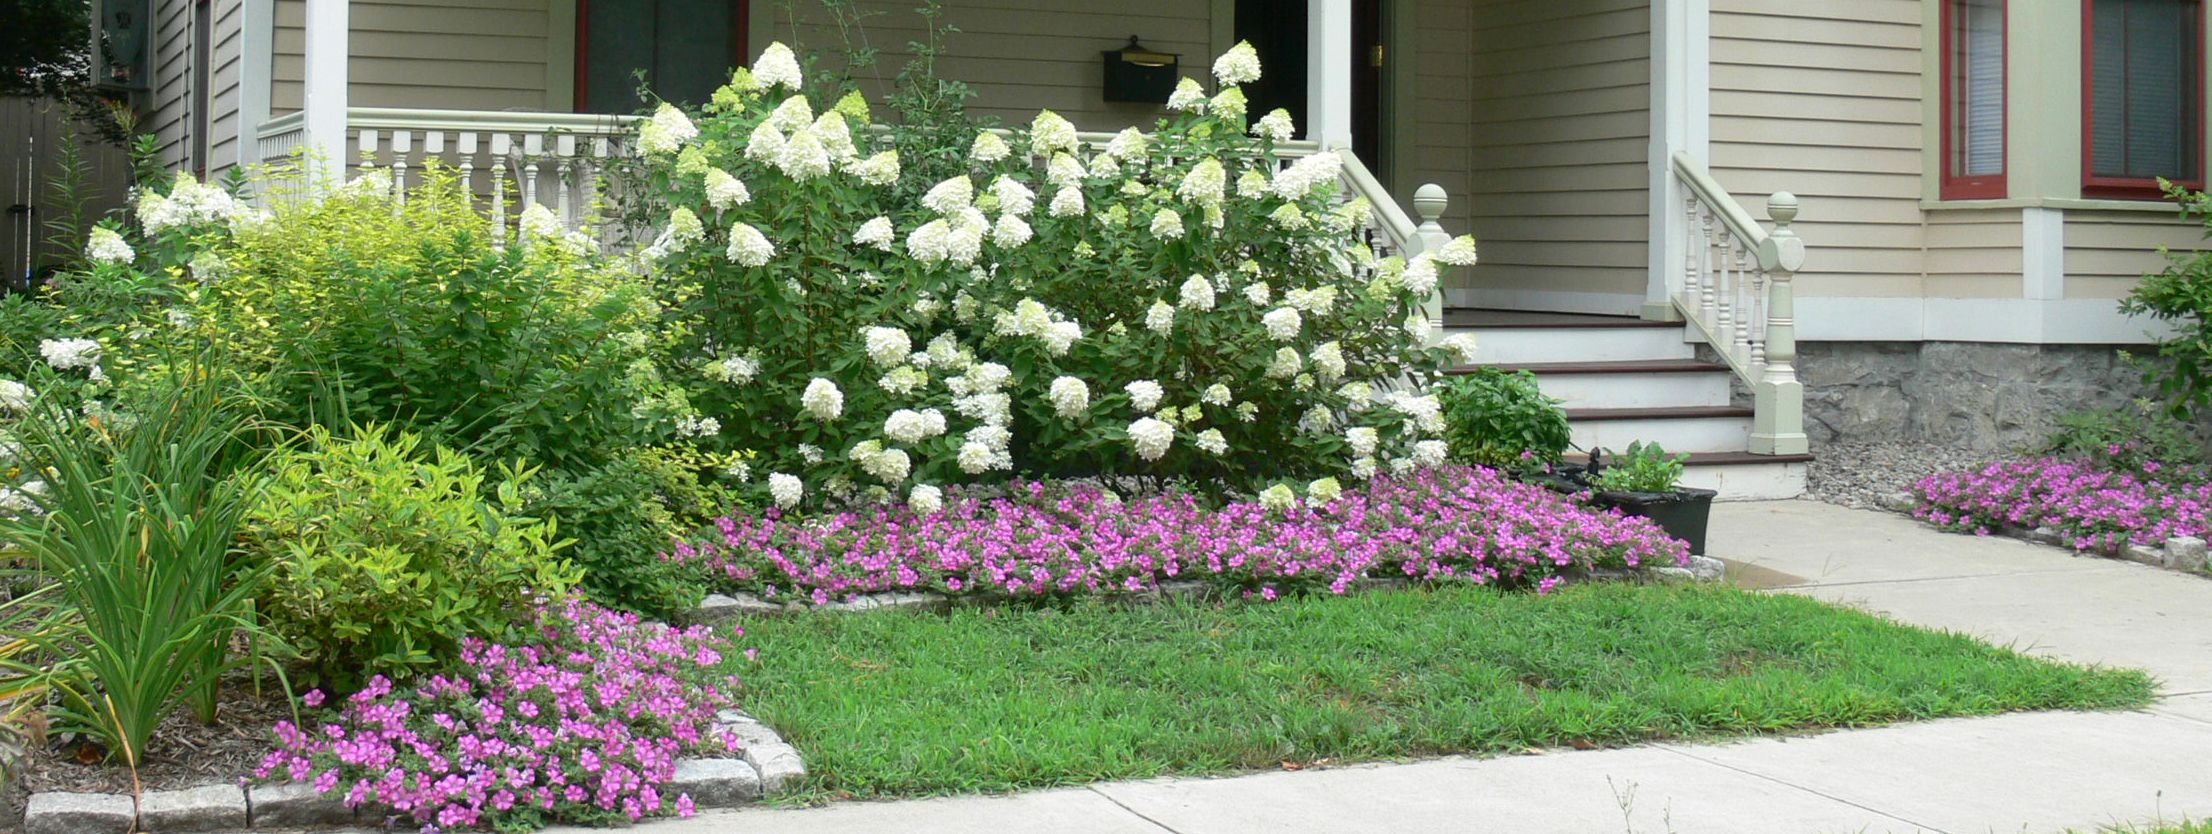 Love Hydrangeas Want To Grow These Front Yard Garden Hydrangea Landscaping Front Yard Landscaping